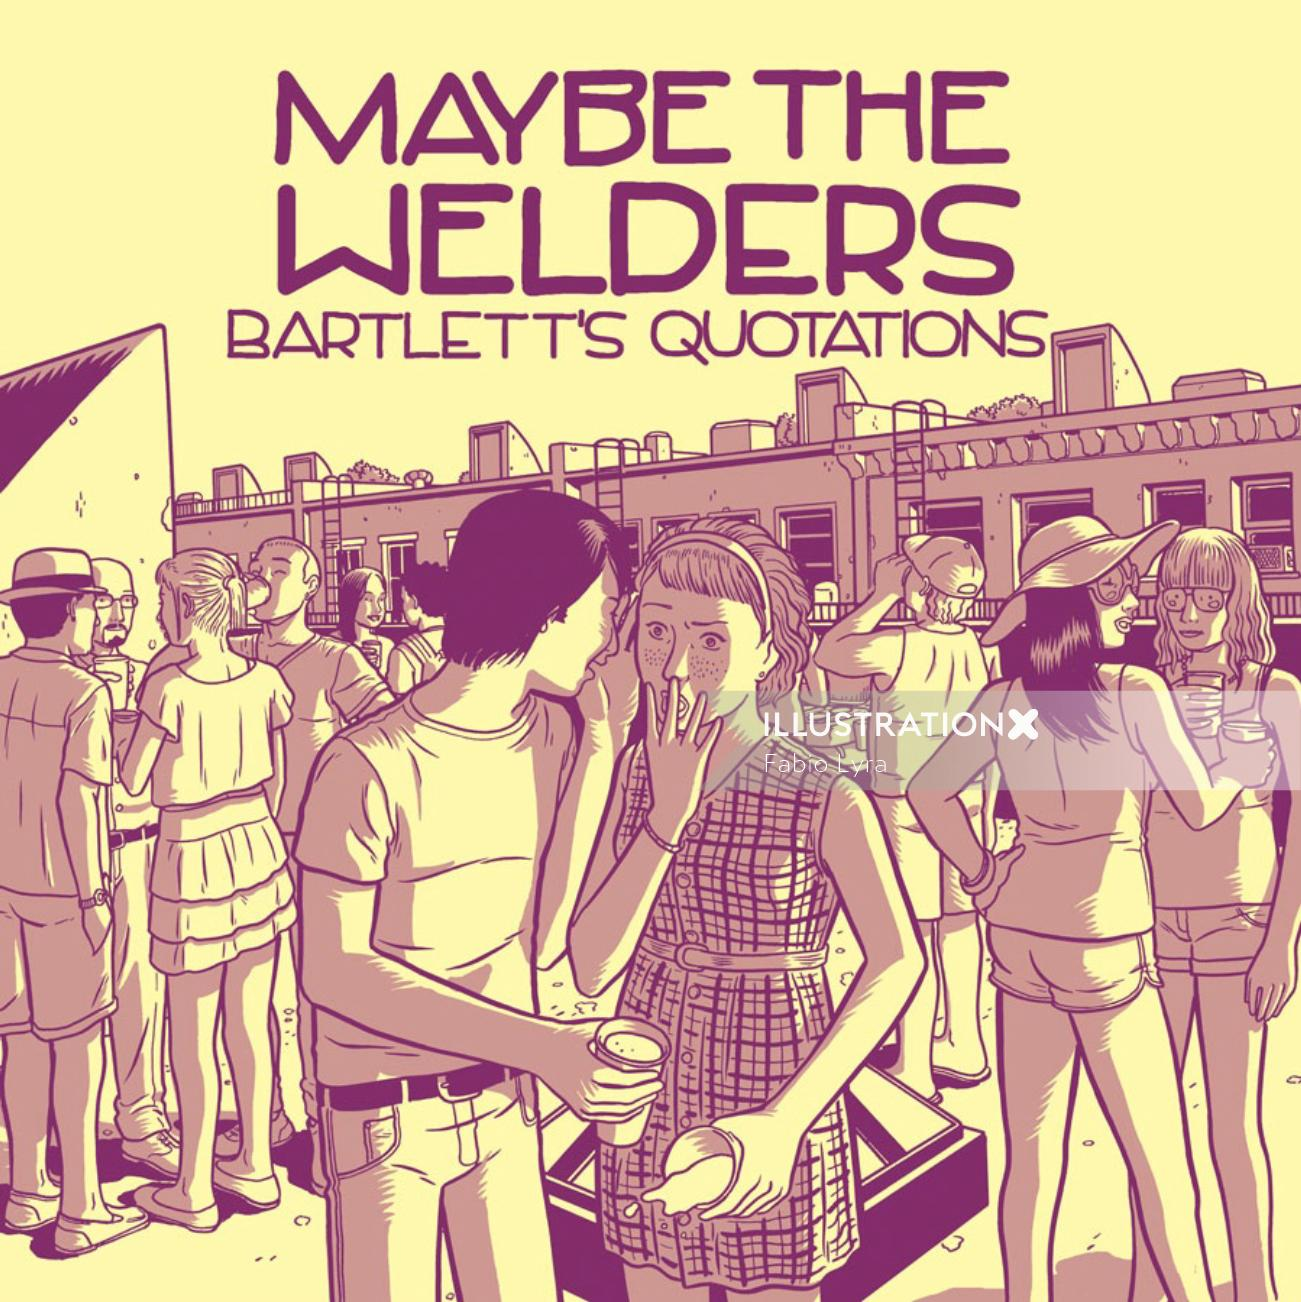 cover for maybe the welders band